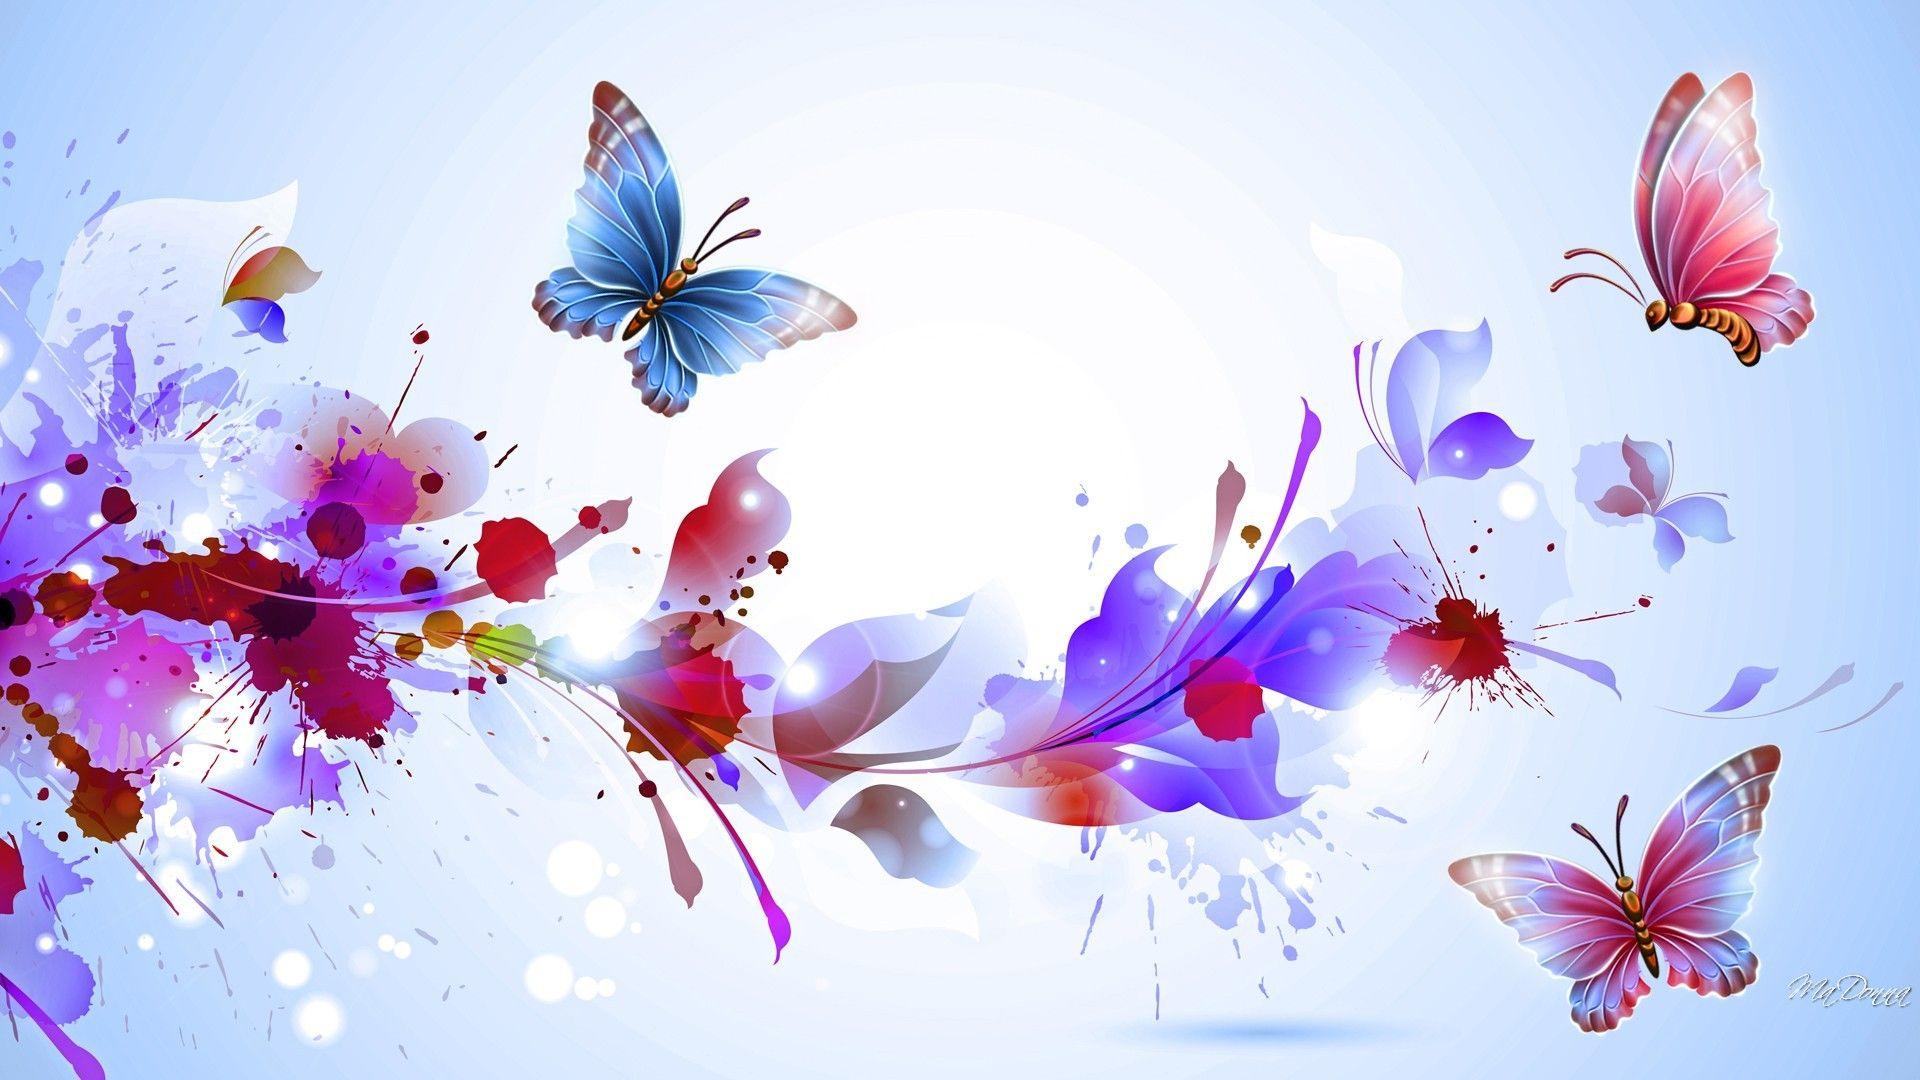 The Picture With Butterflies For Background Abstract Colorful Flowers